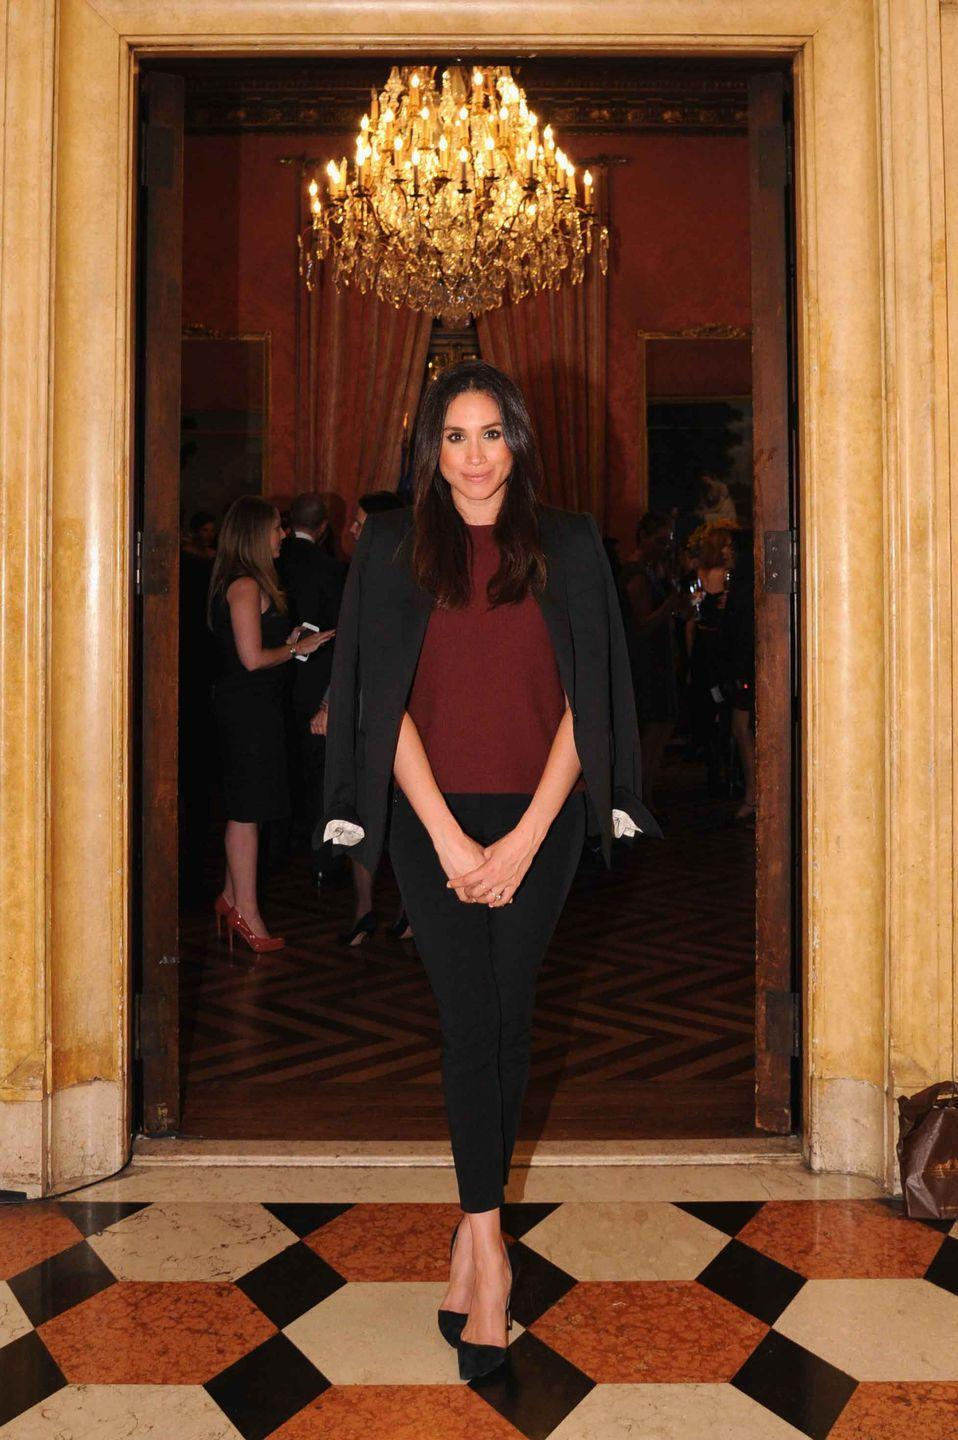 <p>Here, she drapes a blazer over her shoulders at Relais & Chateaux's 60th Anniversary Guest Chef Dinner Launch.</p>